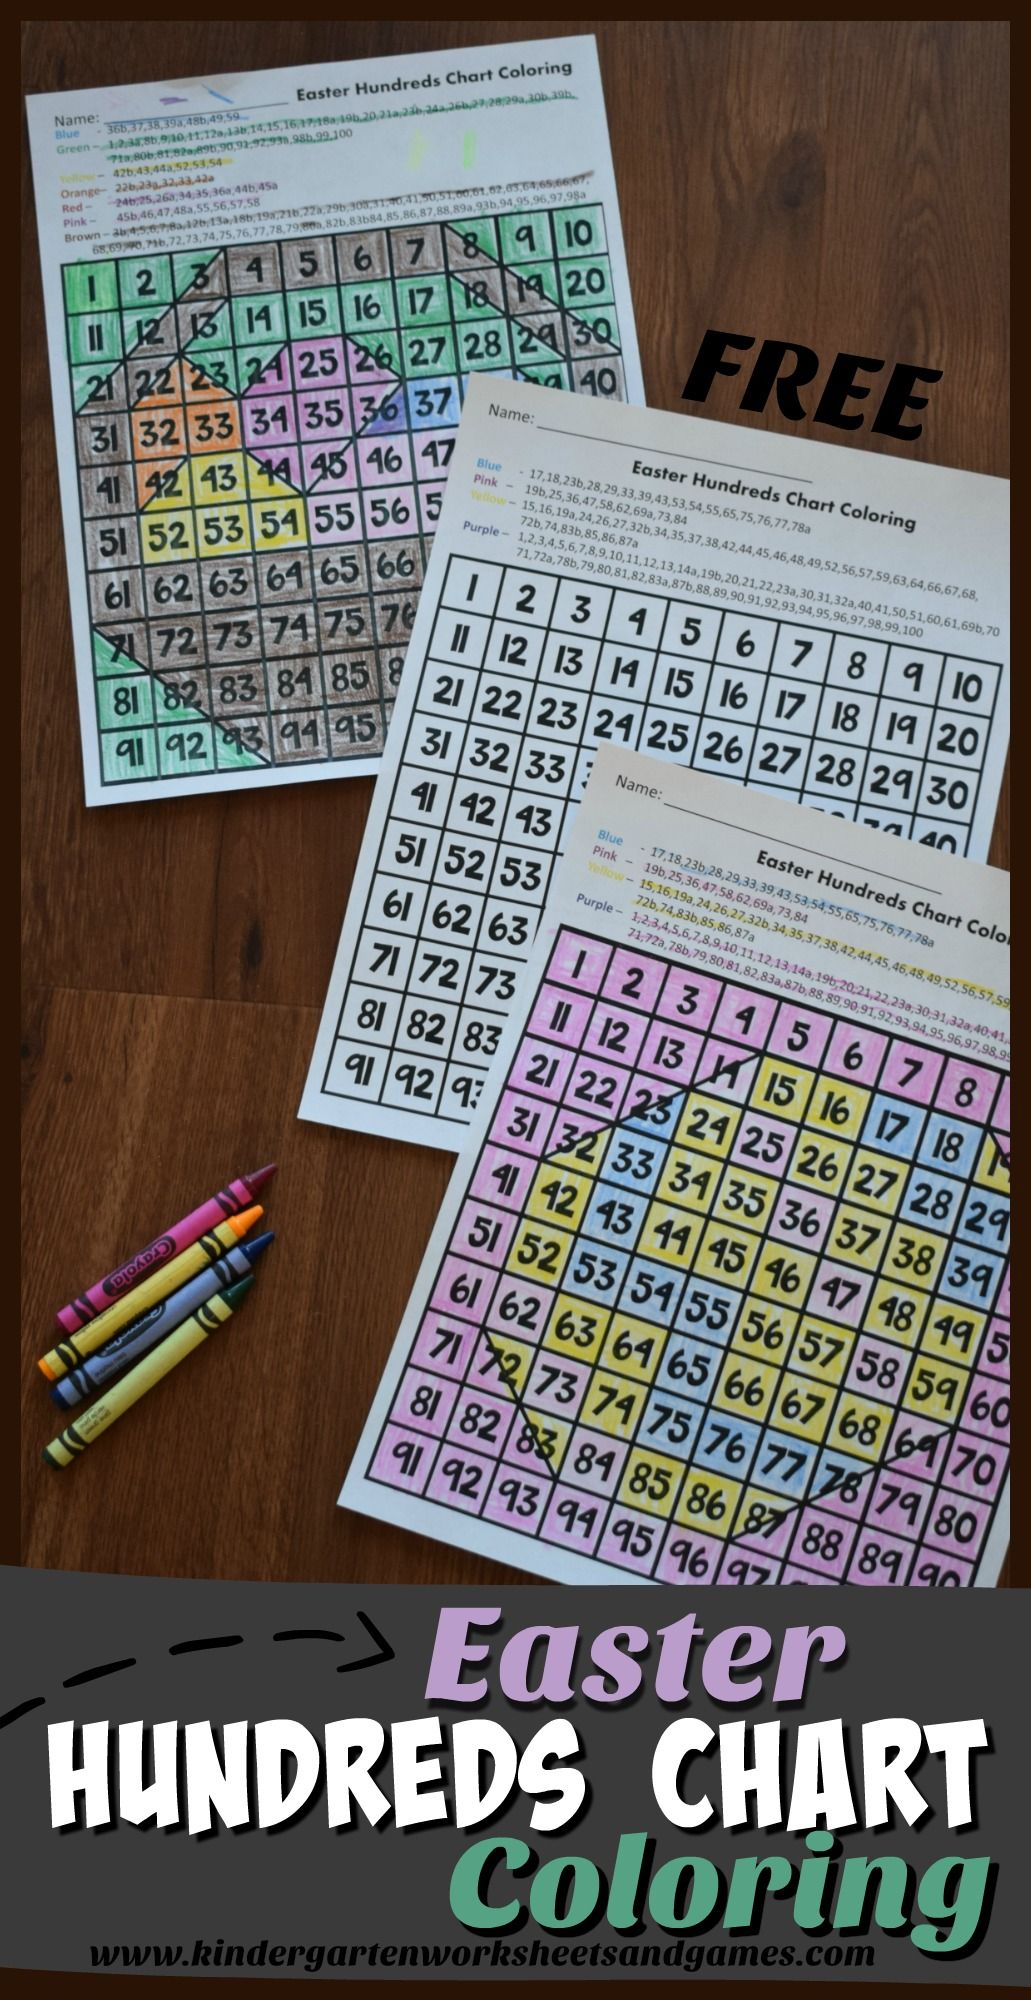 Free Easter Hundreds Chart Coloring